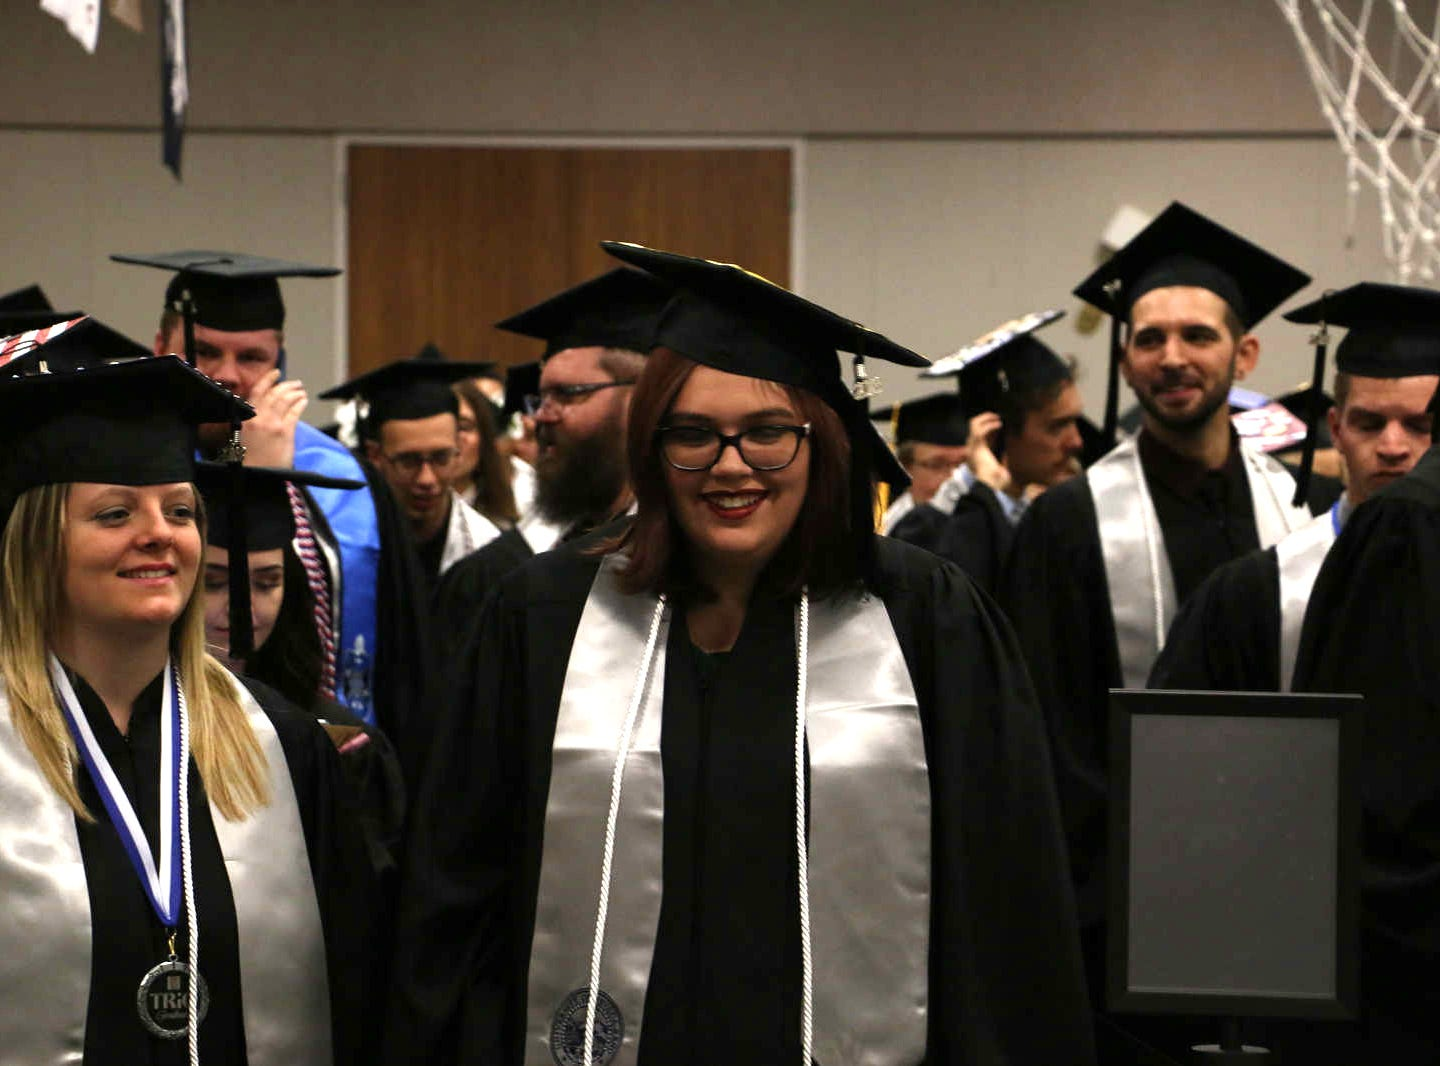 The December Commencement ceremonies at the University of Nevada, Reno on Dec. 8, 2018.